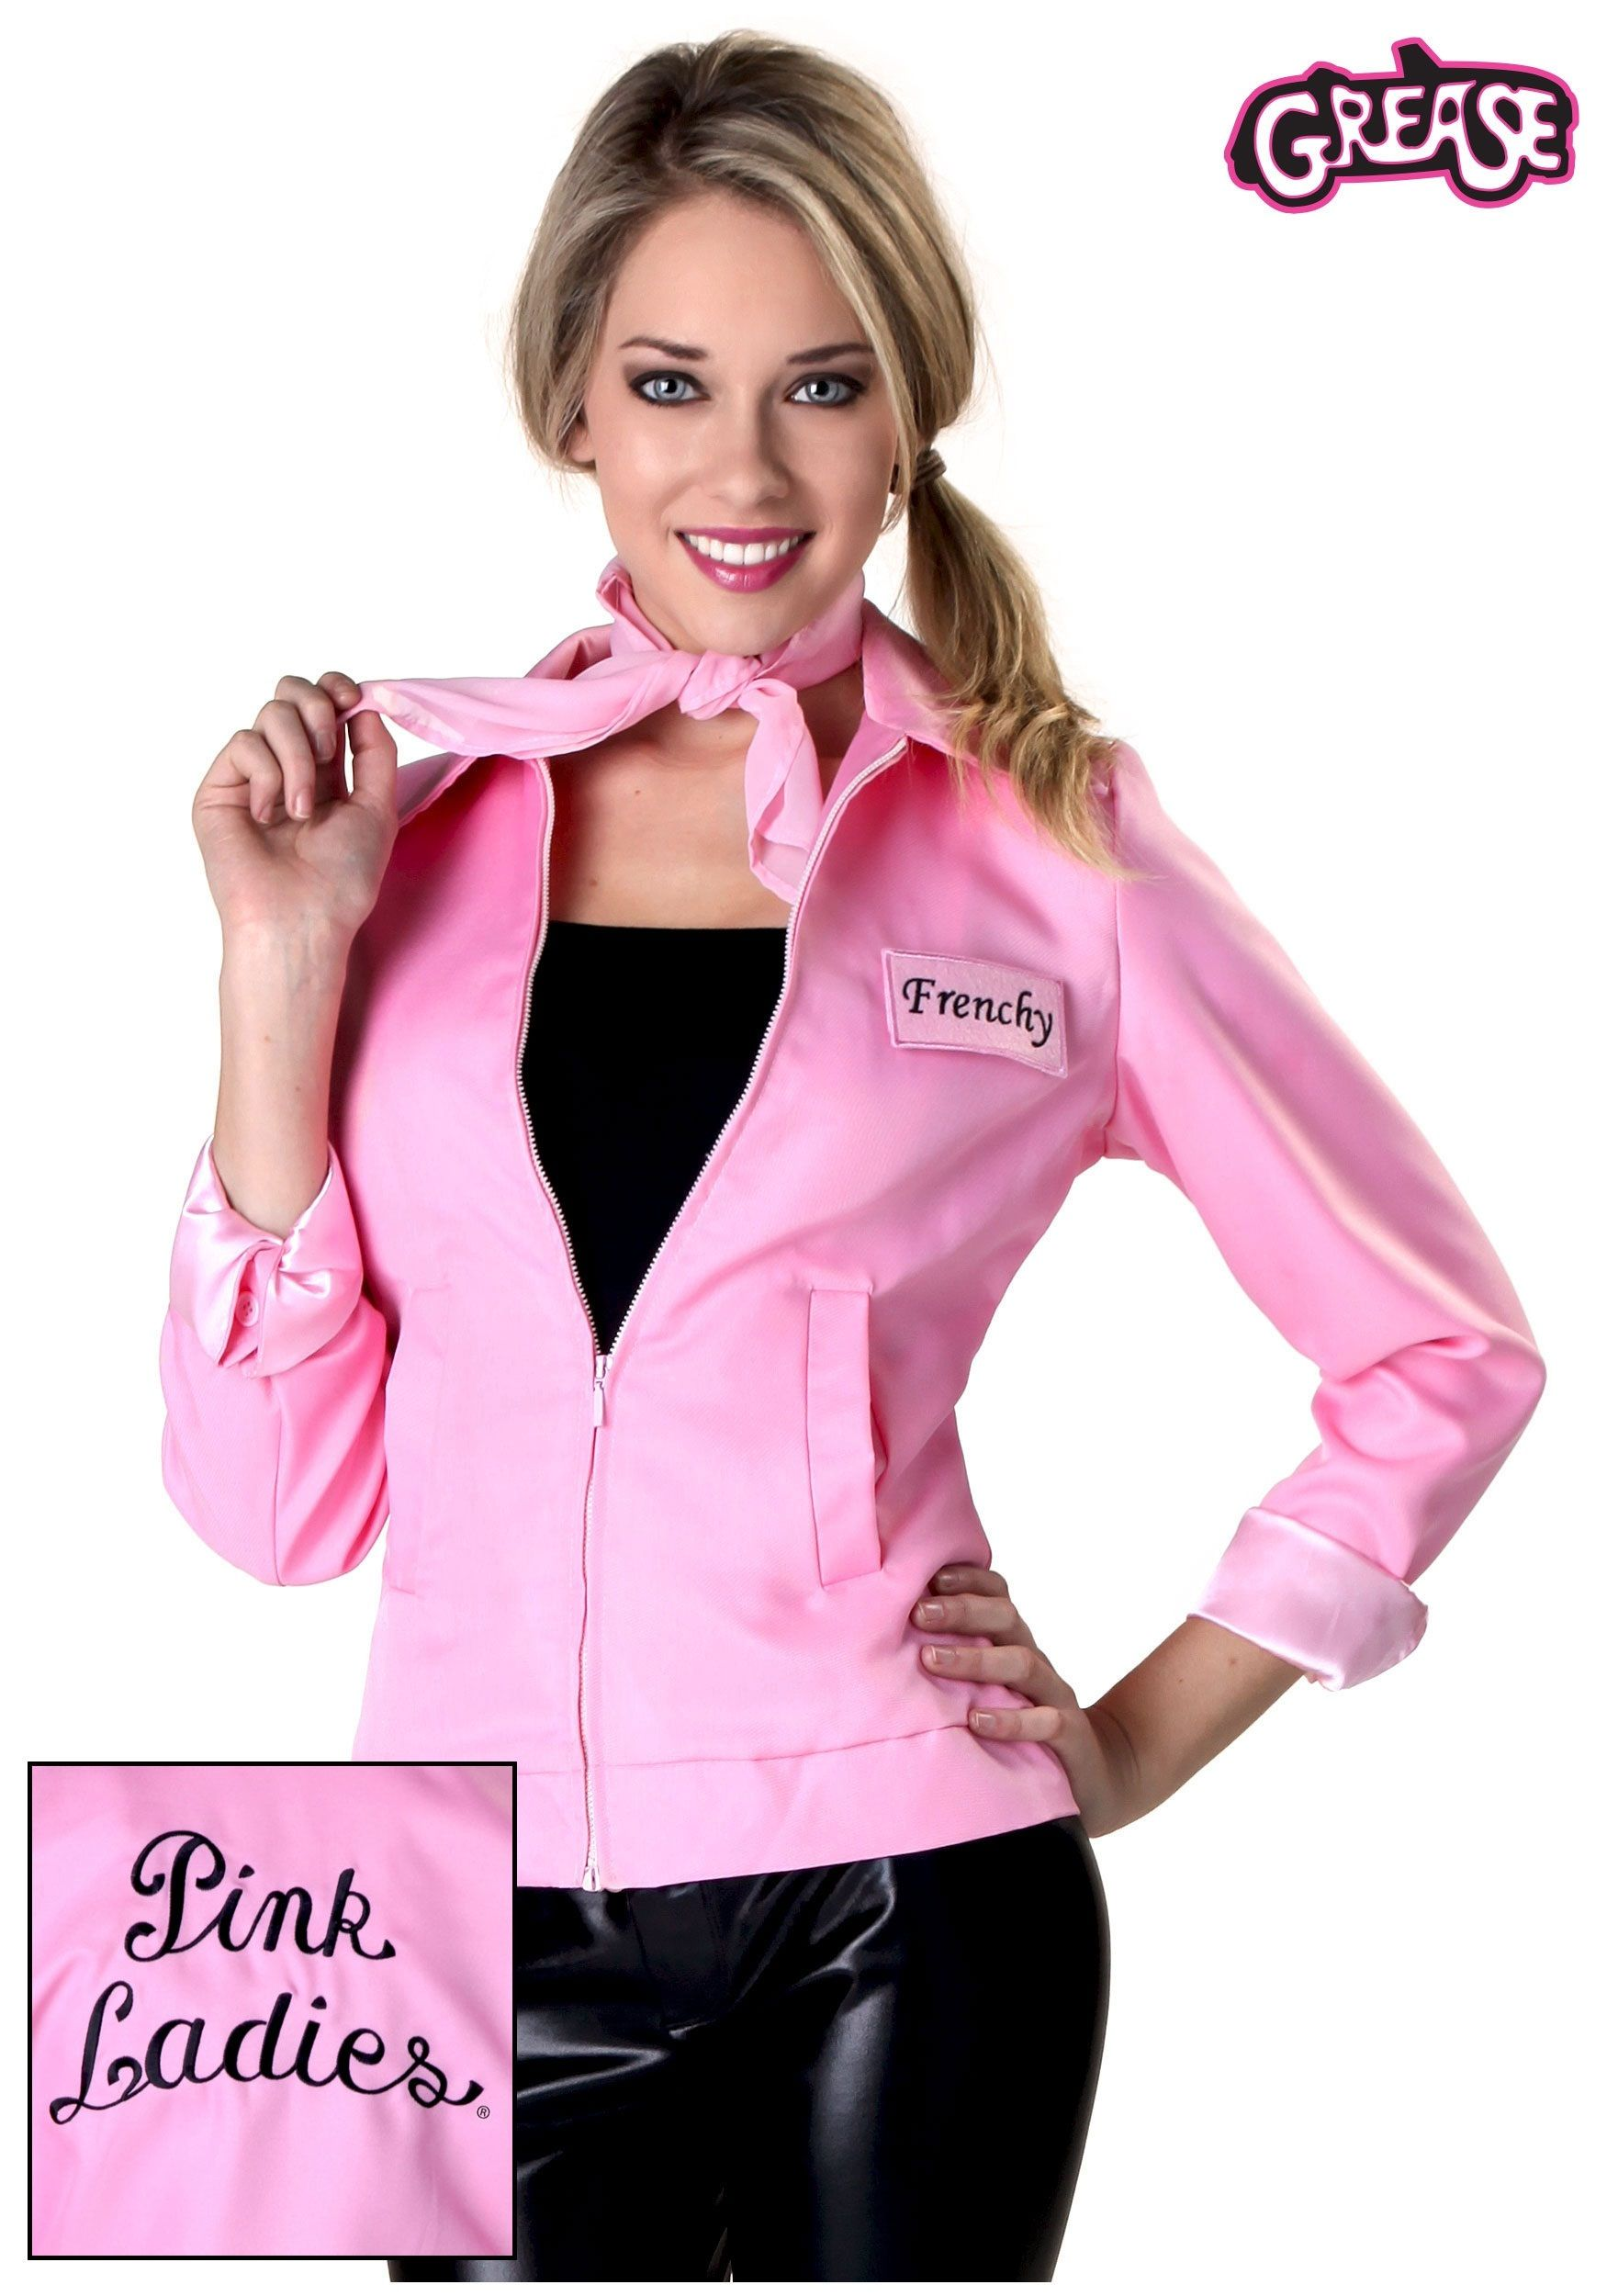 Authentic Grease Plus Size Pink Ladies Jacket | Plus Size Halloween ...